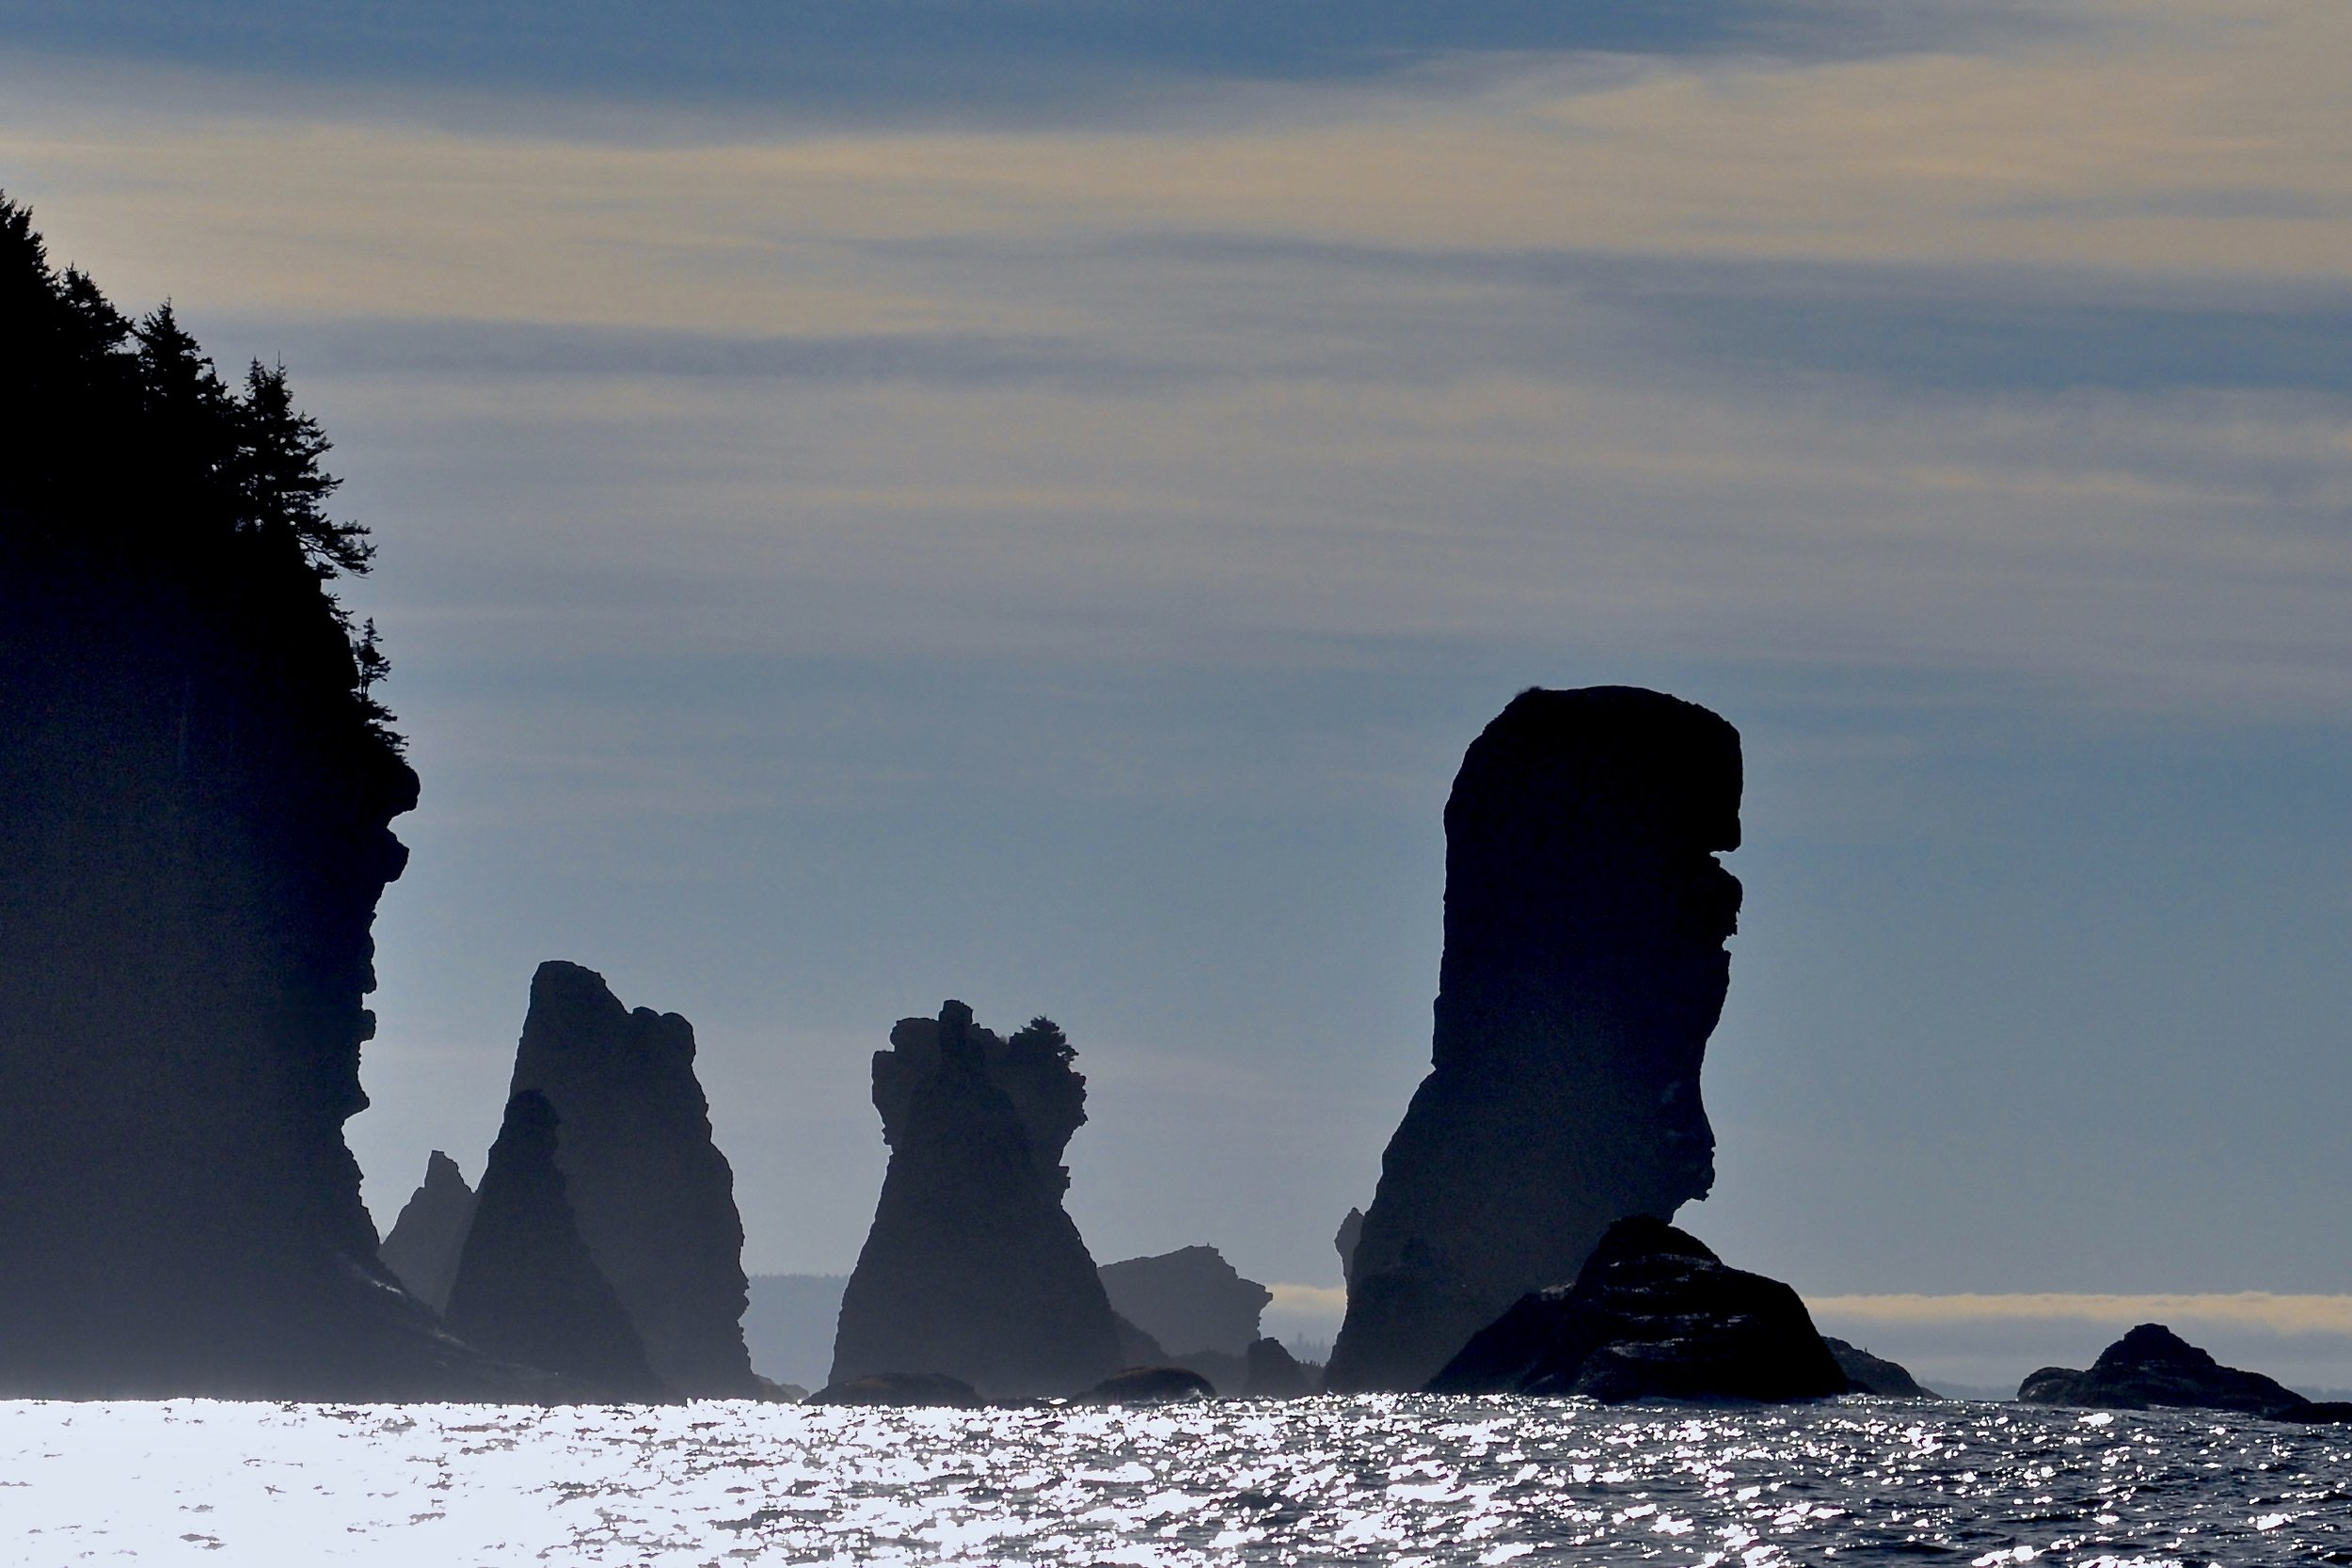 Sea Silhouettes, Cape Flattery, Washington Coast